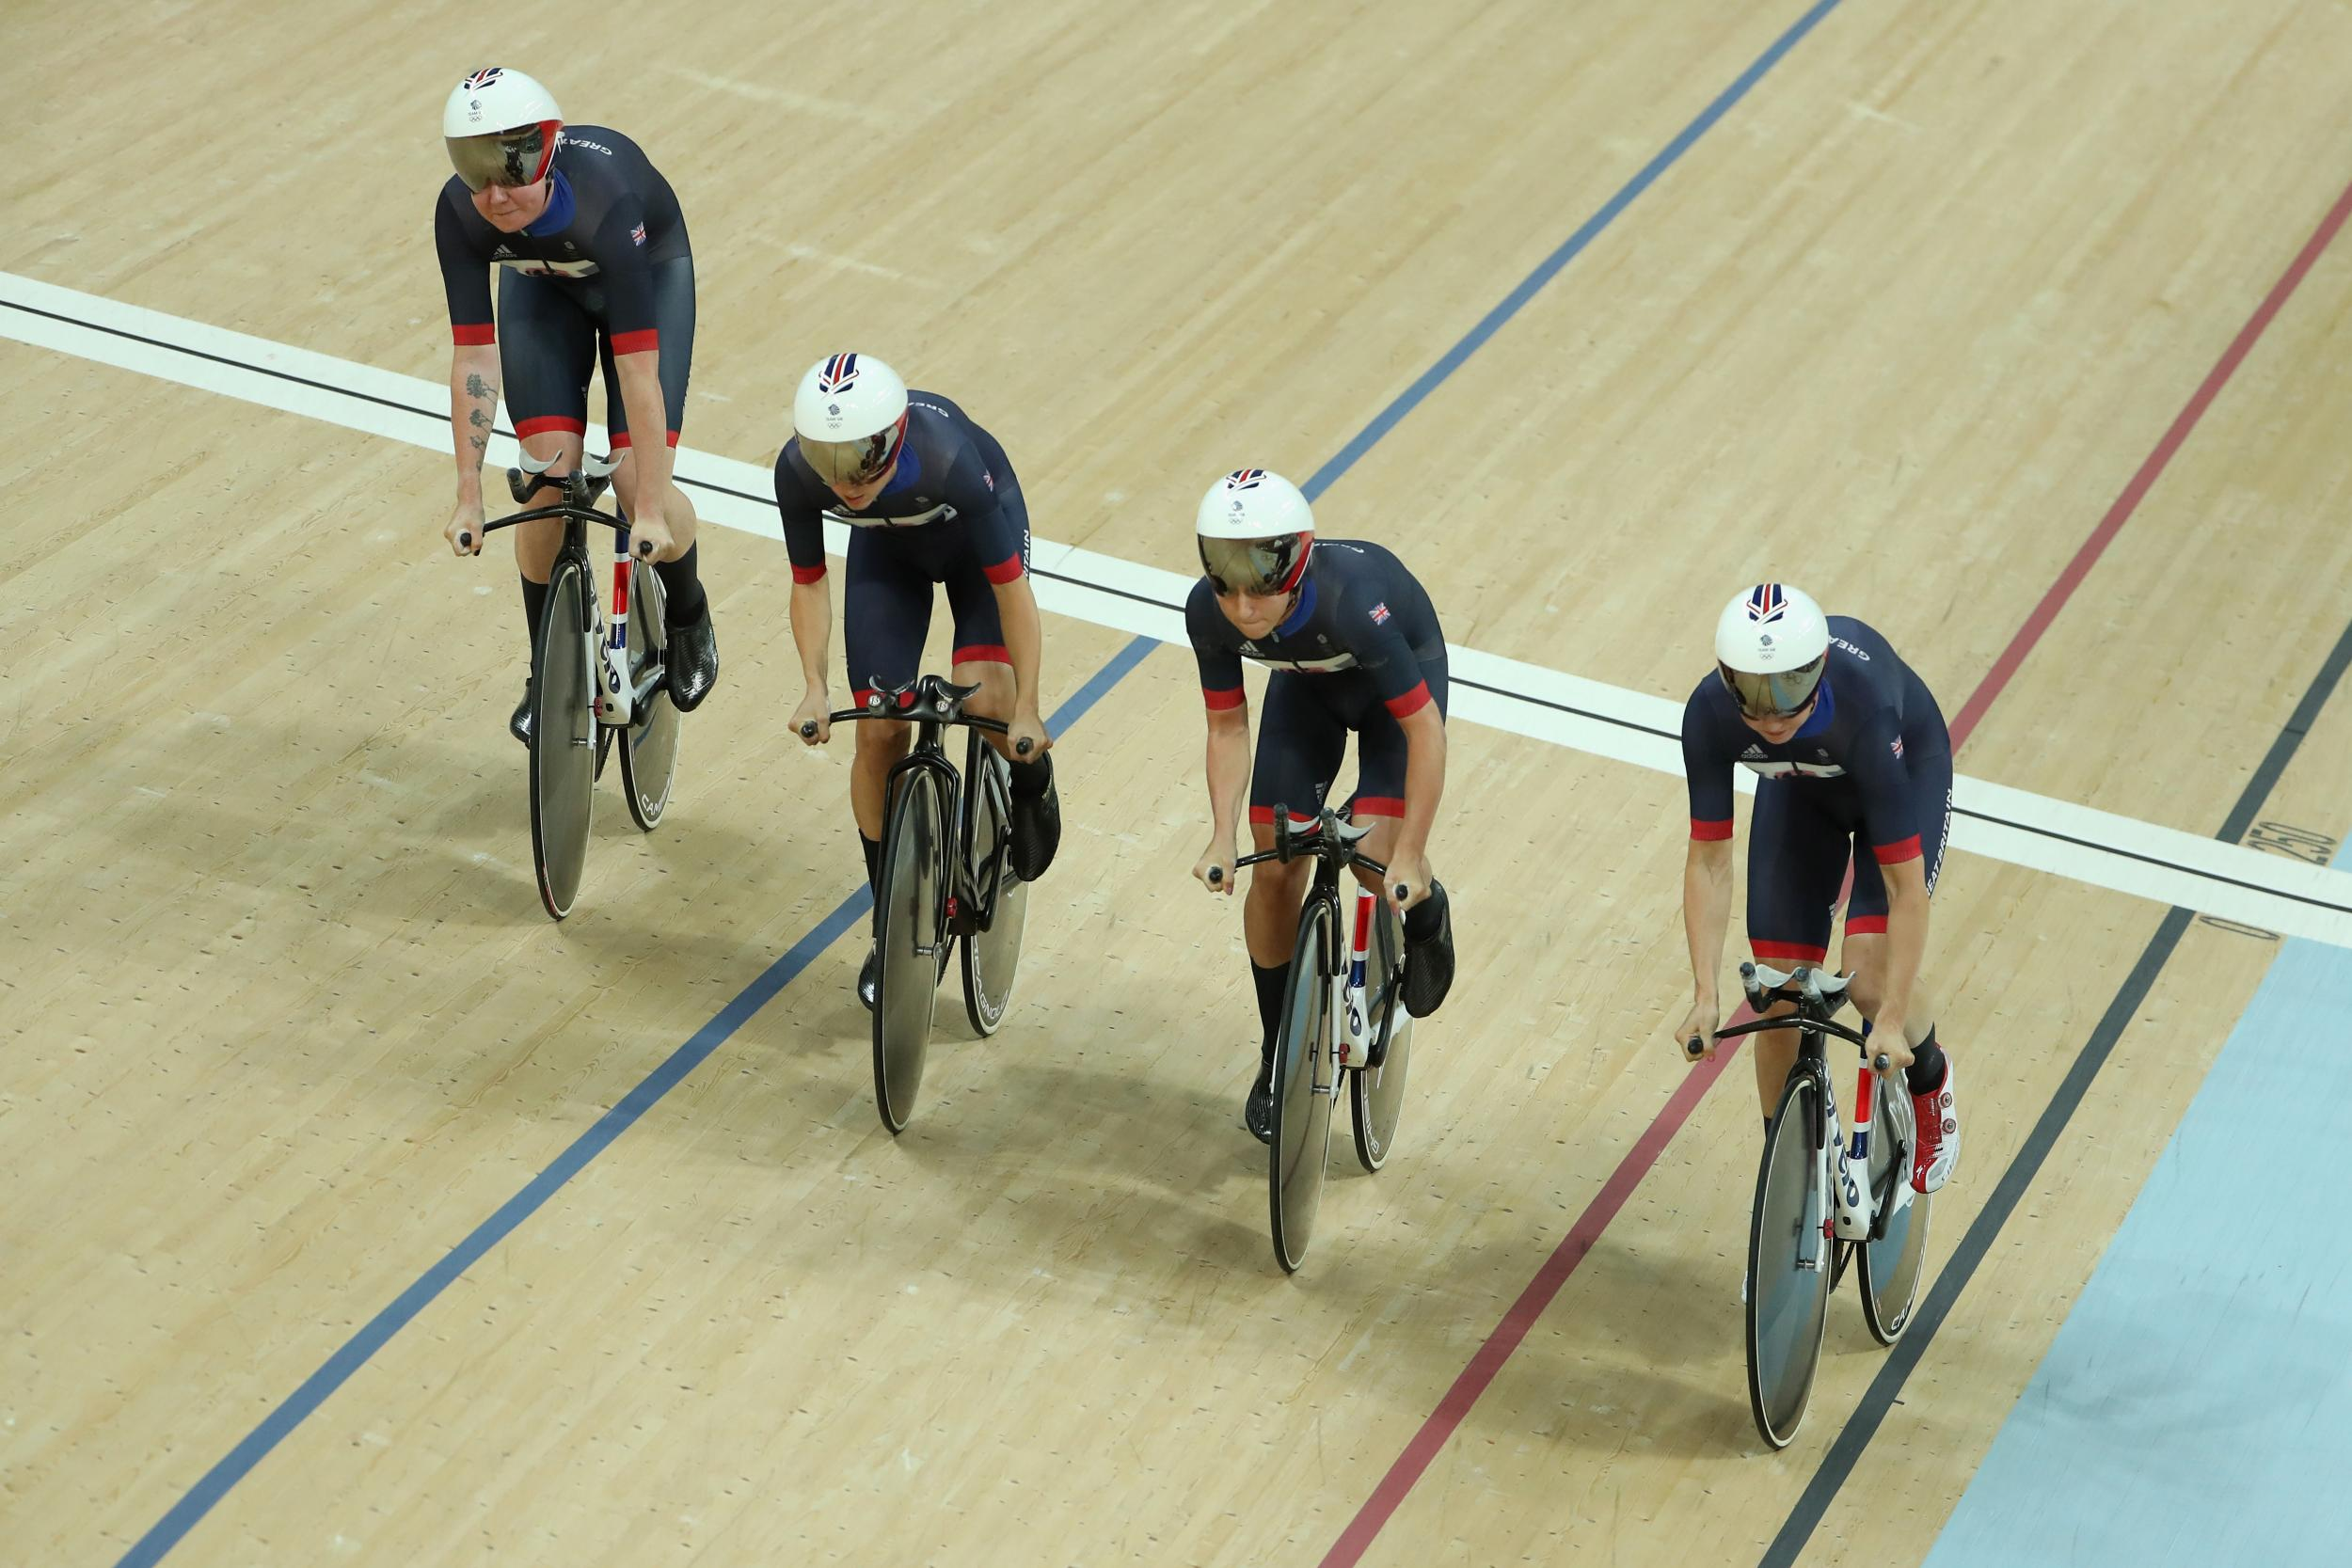 Rio 2016 live: More cycling success as the women's team pursuit take gold while Becky James surges to silver